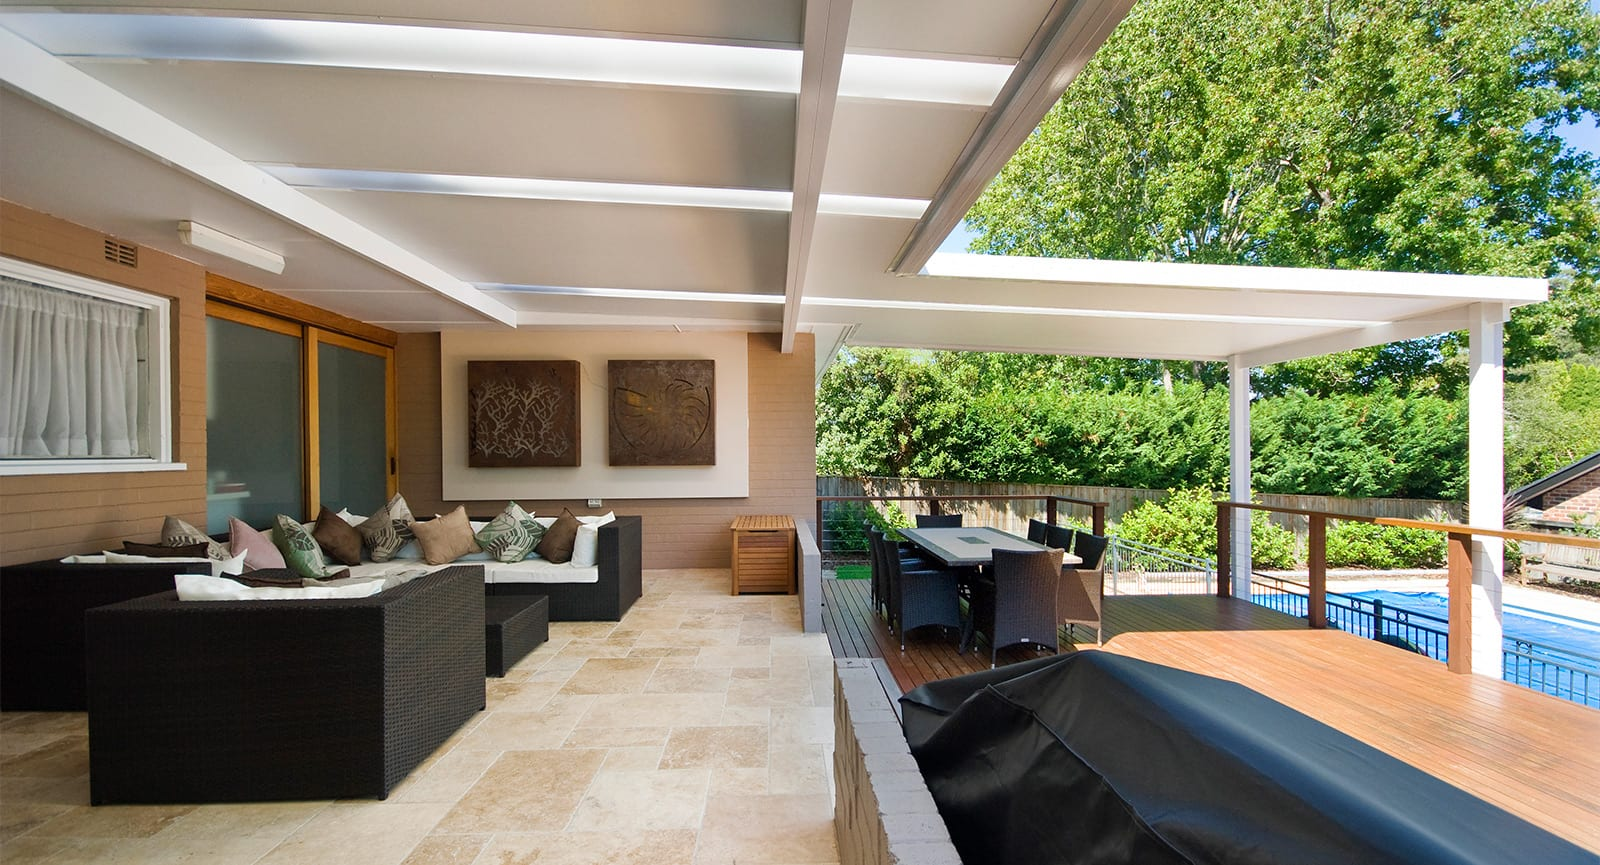 Pergola Land - Tailored Outdoor Living